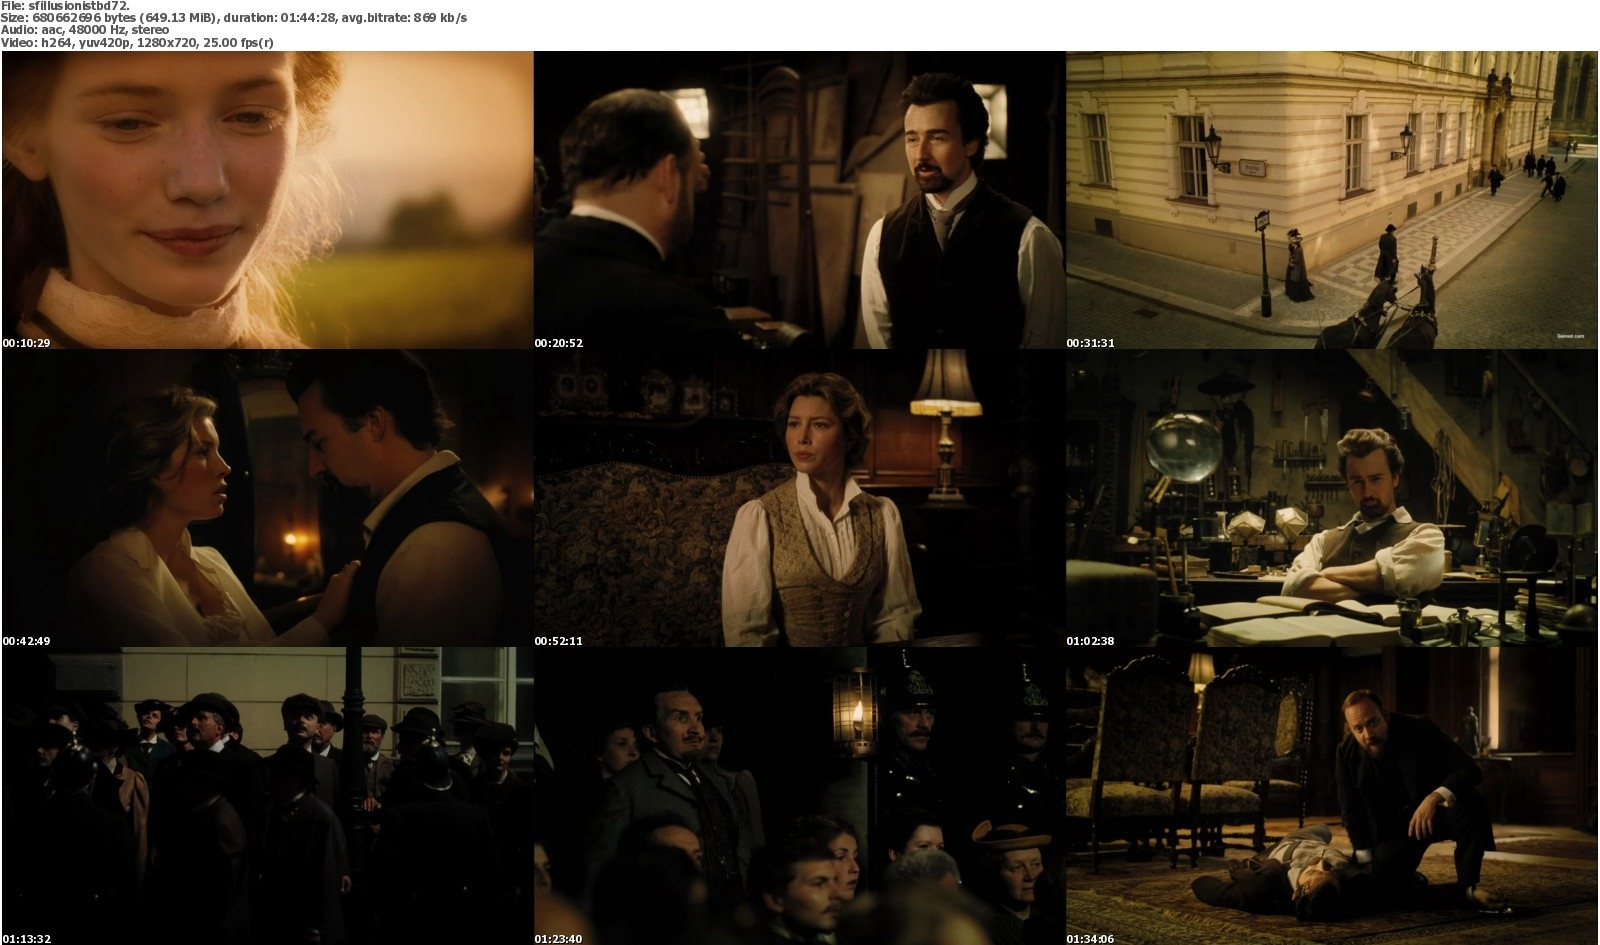 http://4.bp.blogspot.com/-vy5t9b9-Hl8/Tn2ghFE-jZI/AAAAAAAABAw/No56_zyBdK8/s1600/The+Illusionist+%25282006%2529+BluRay+720p+650MB.jpg